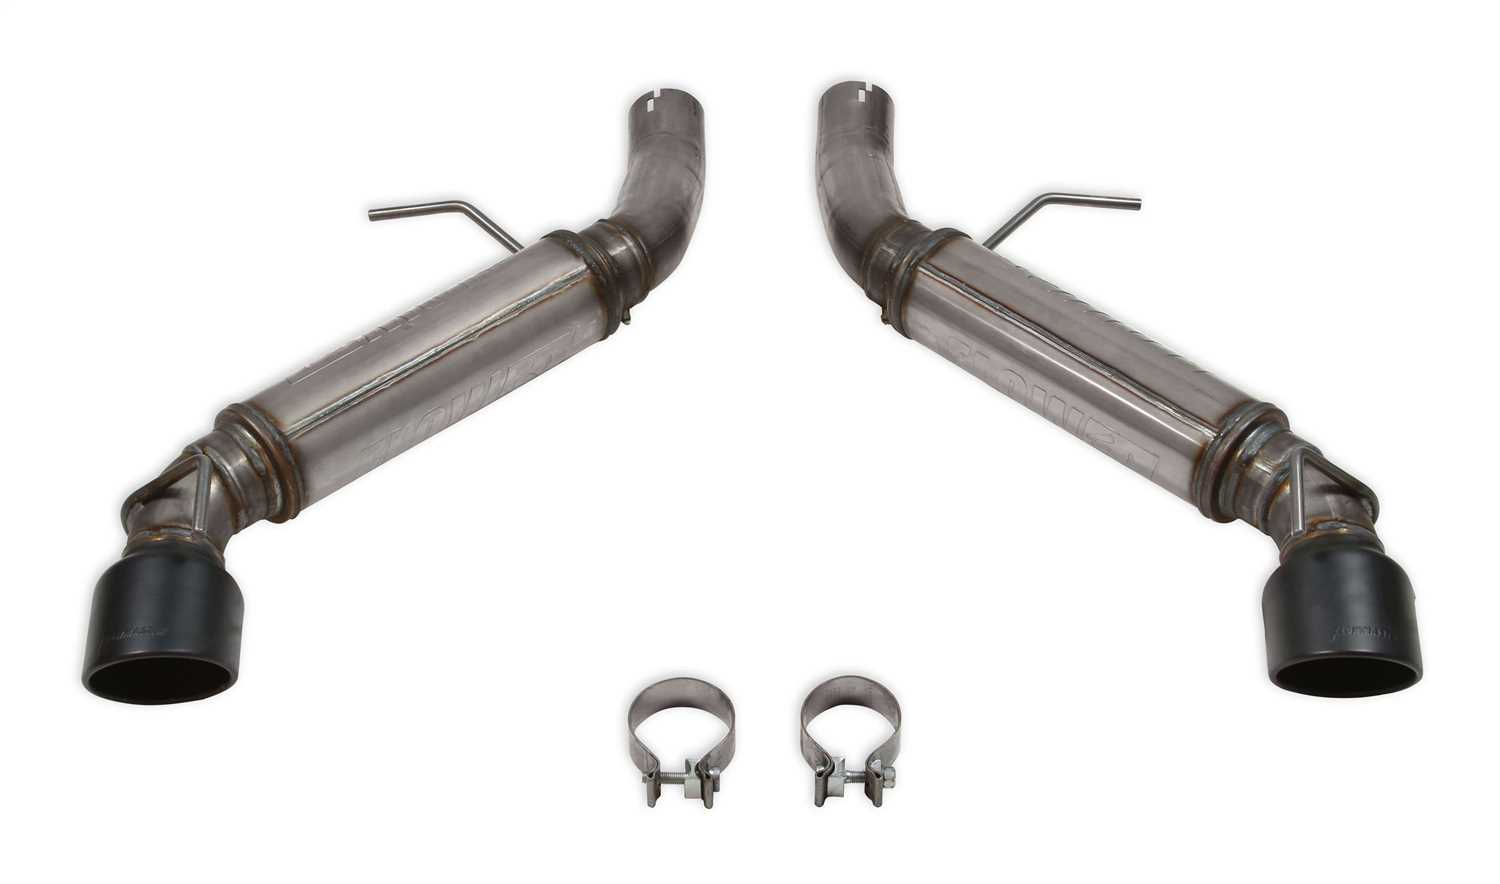 717828 Flowmaster FlowFX Axle Back Exhaust System